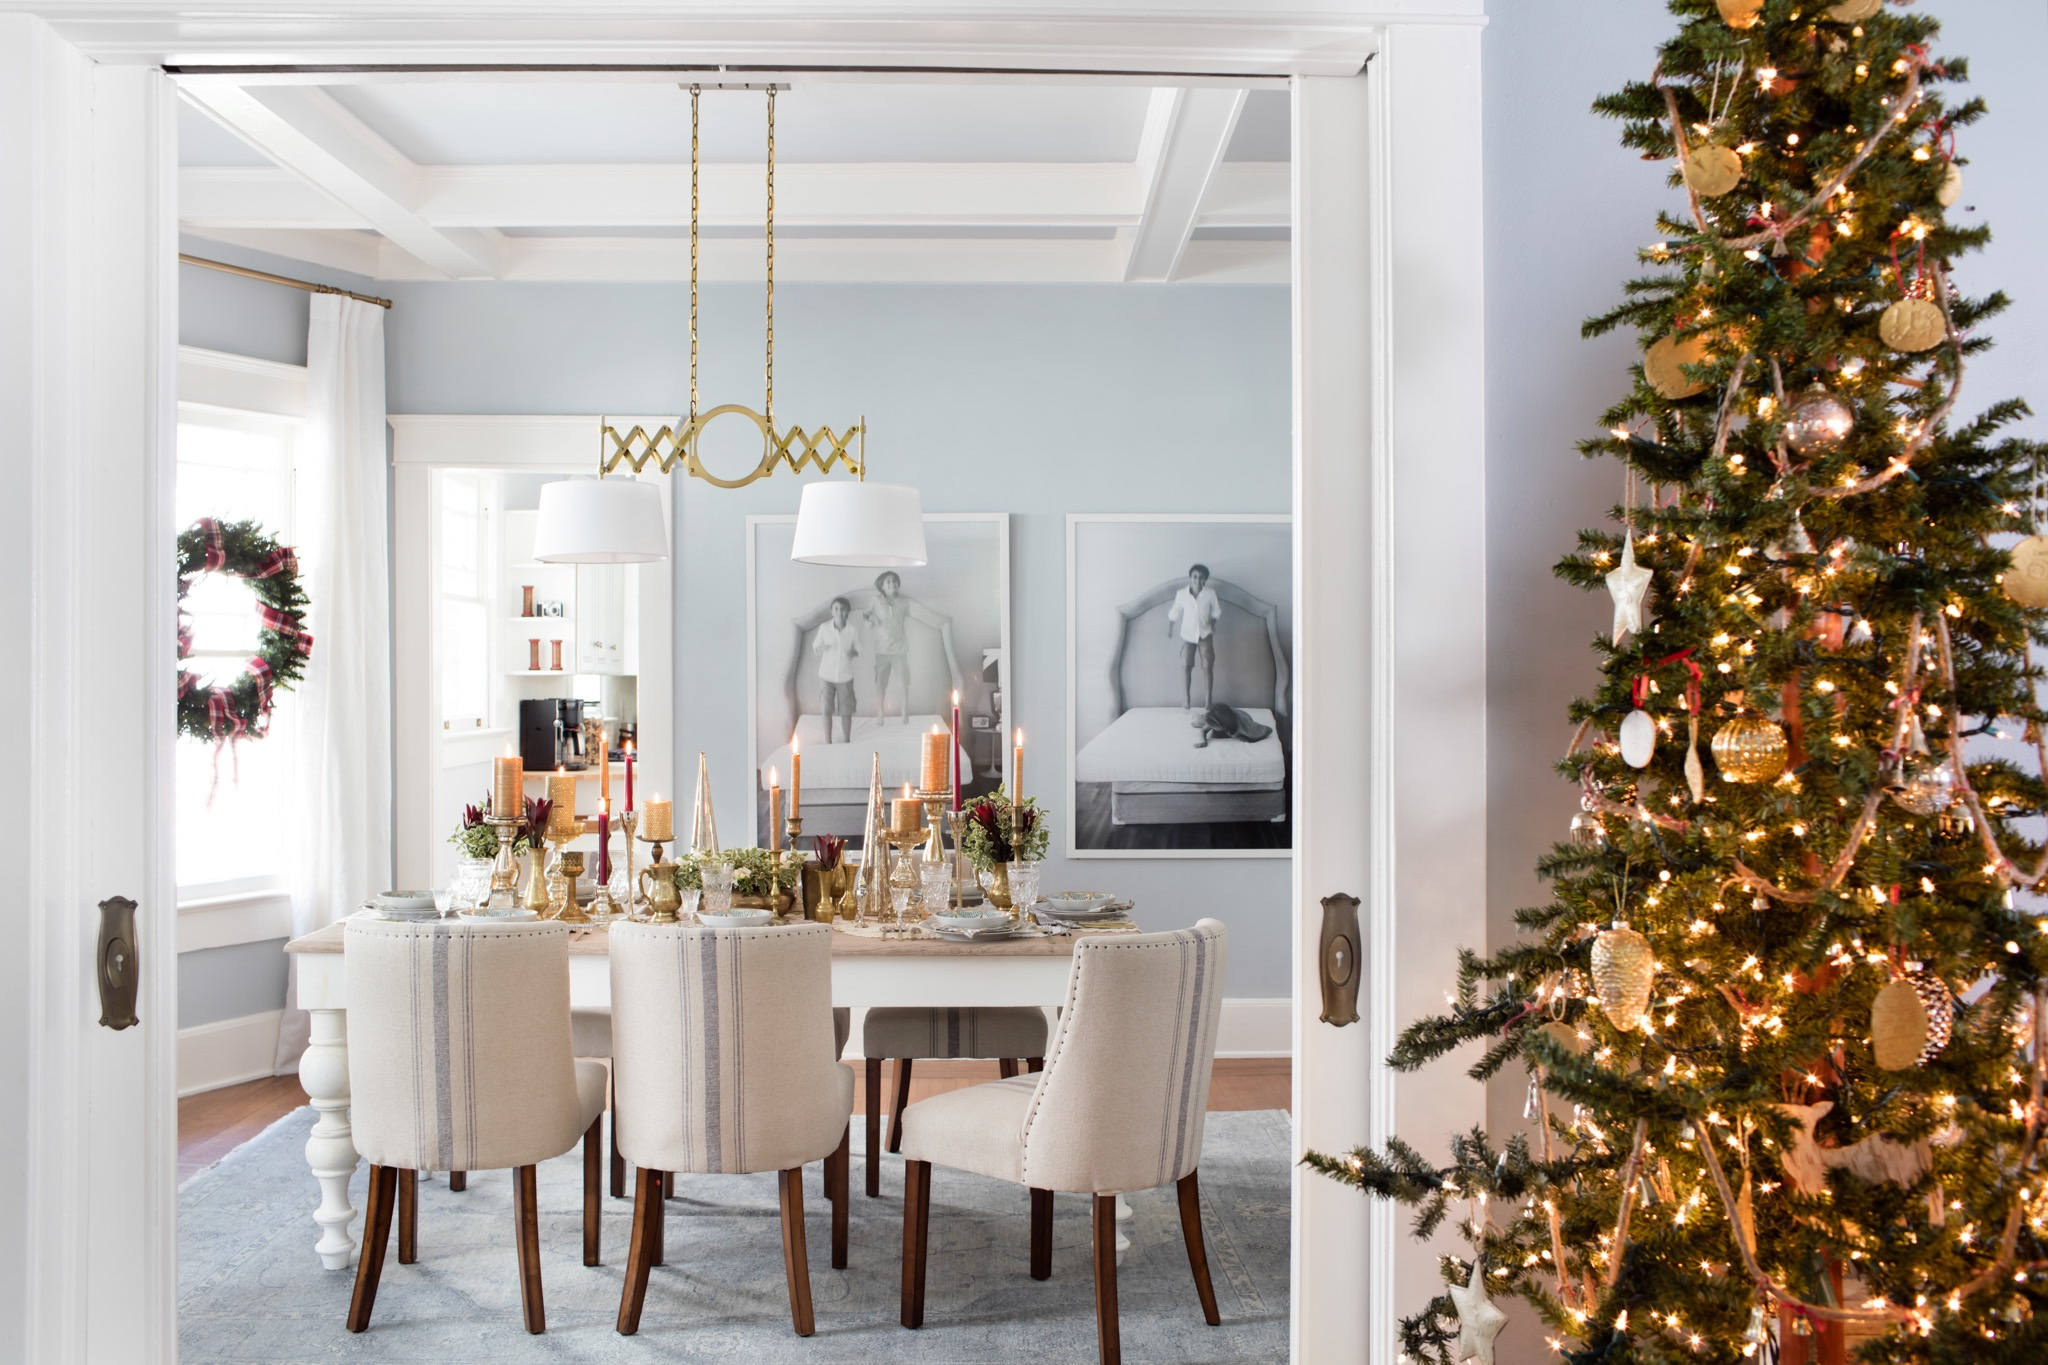 Festive Dining Room With Christmas Tree And Industrial Style Chandelier (View 16 of 32)